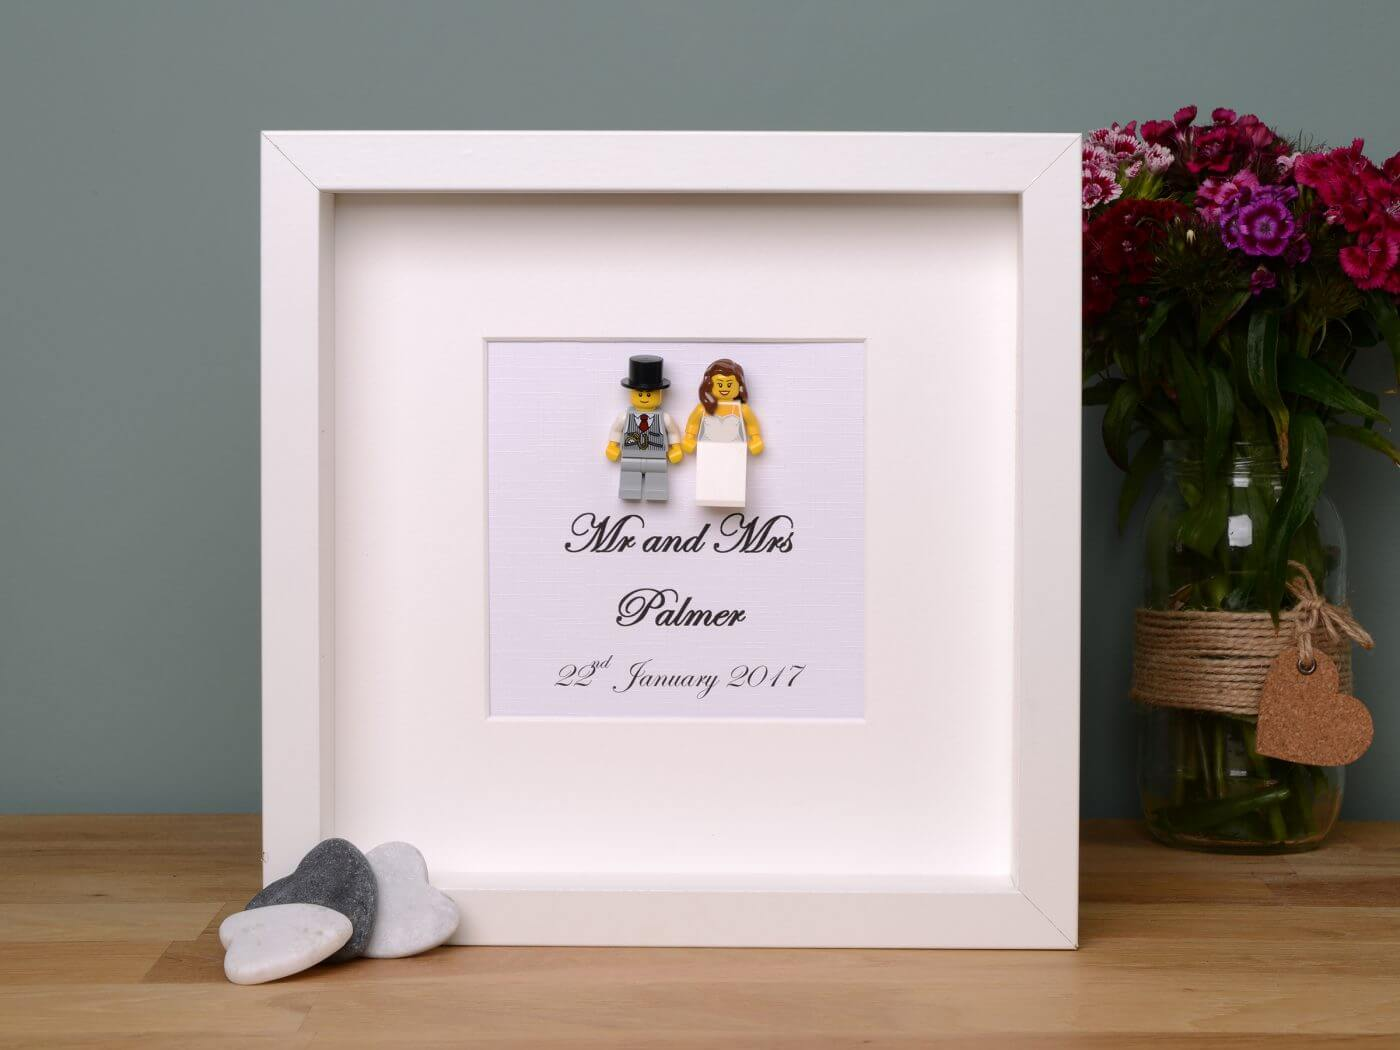 Lego Wedding Frame Wedding Gifts Free Uk Delivery Little Gems